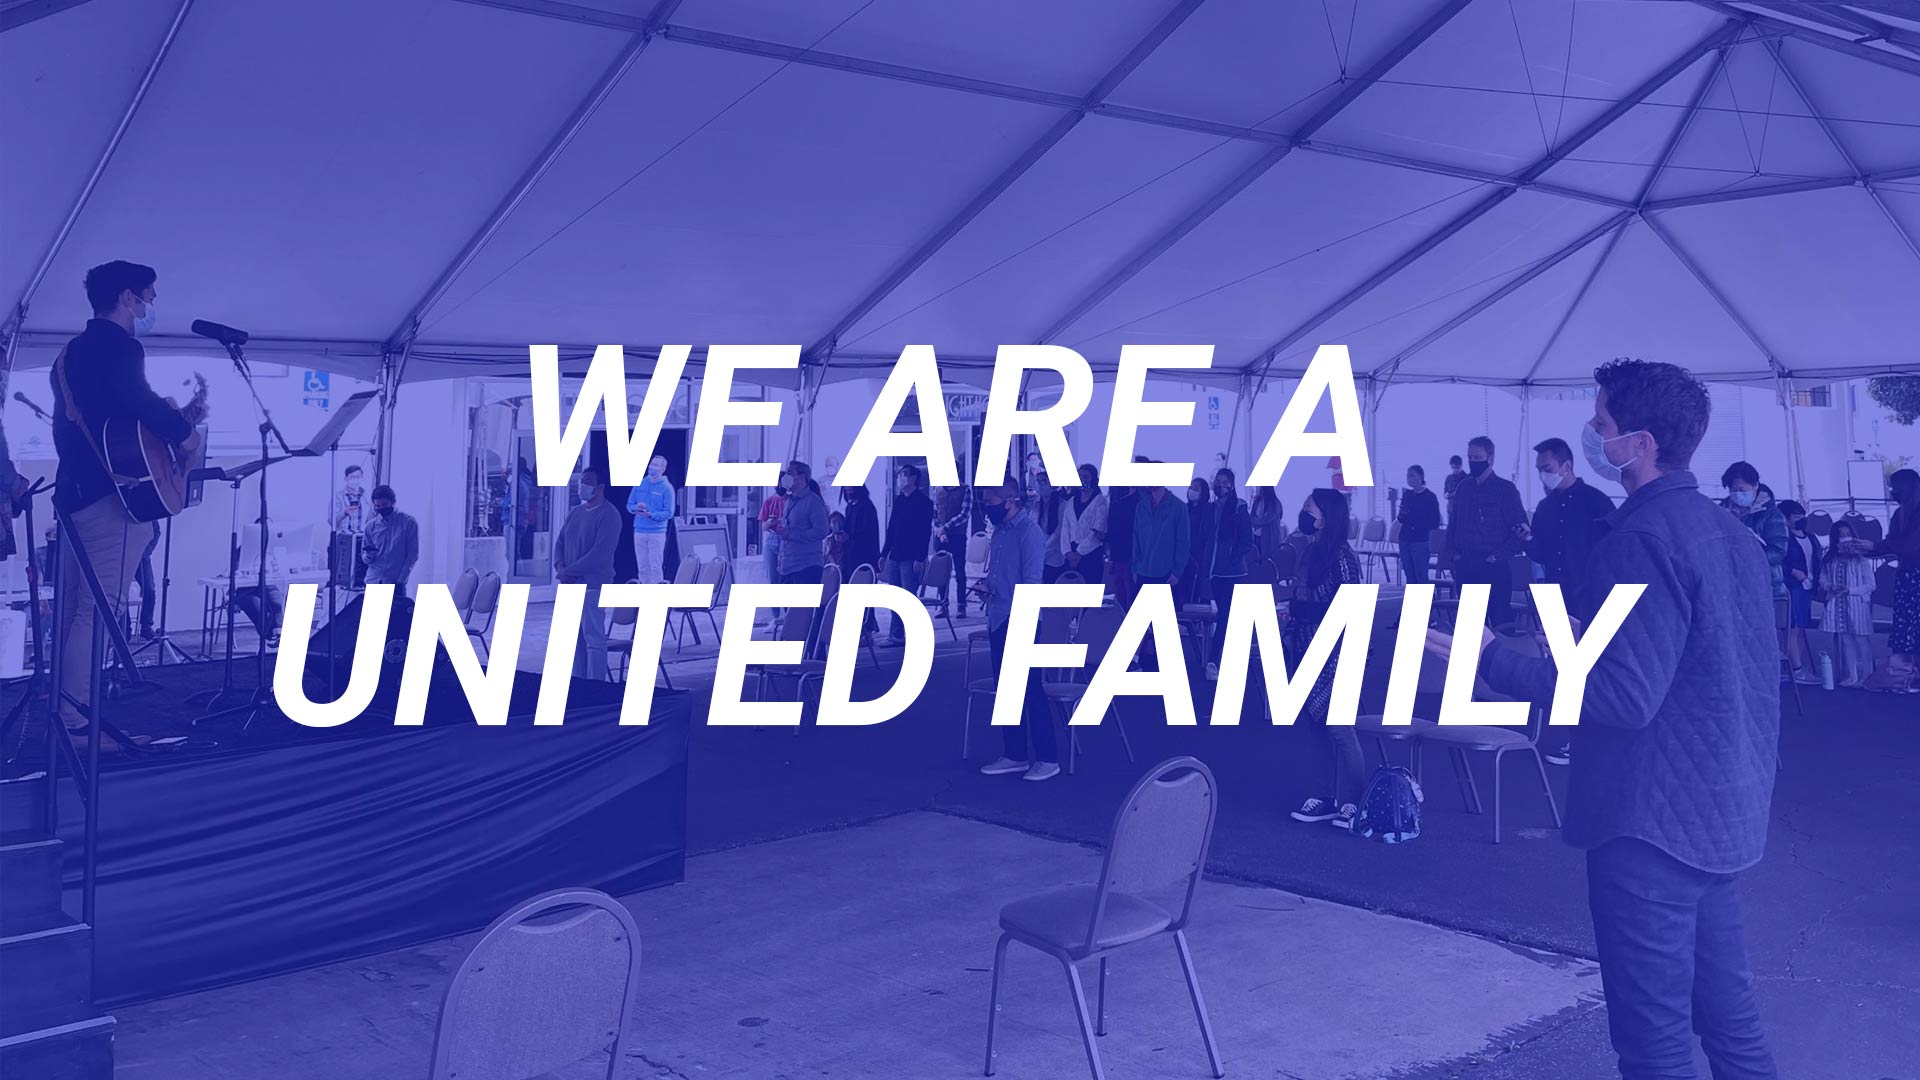 We Are a United Family (Ephesians 2:11-22; 4:1-6)